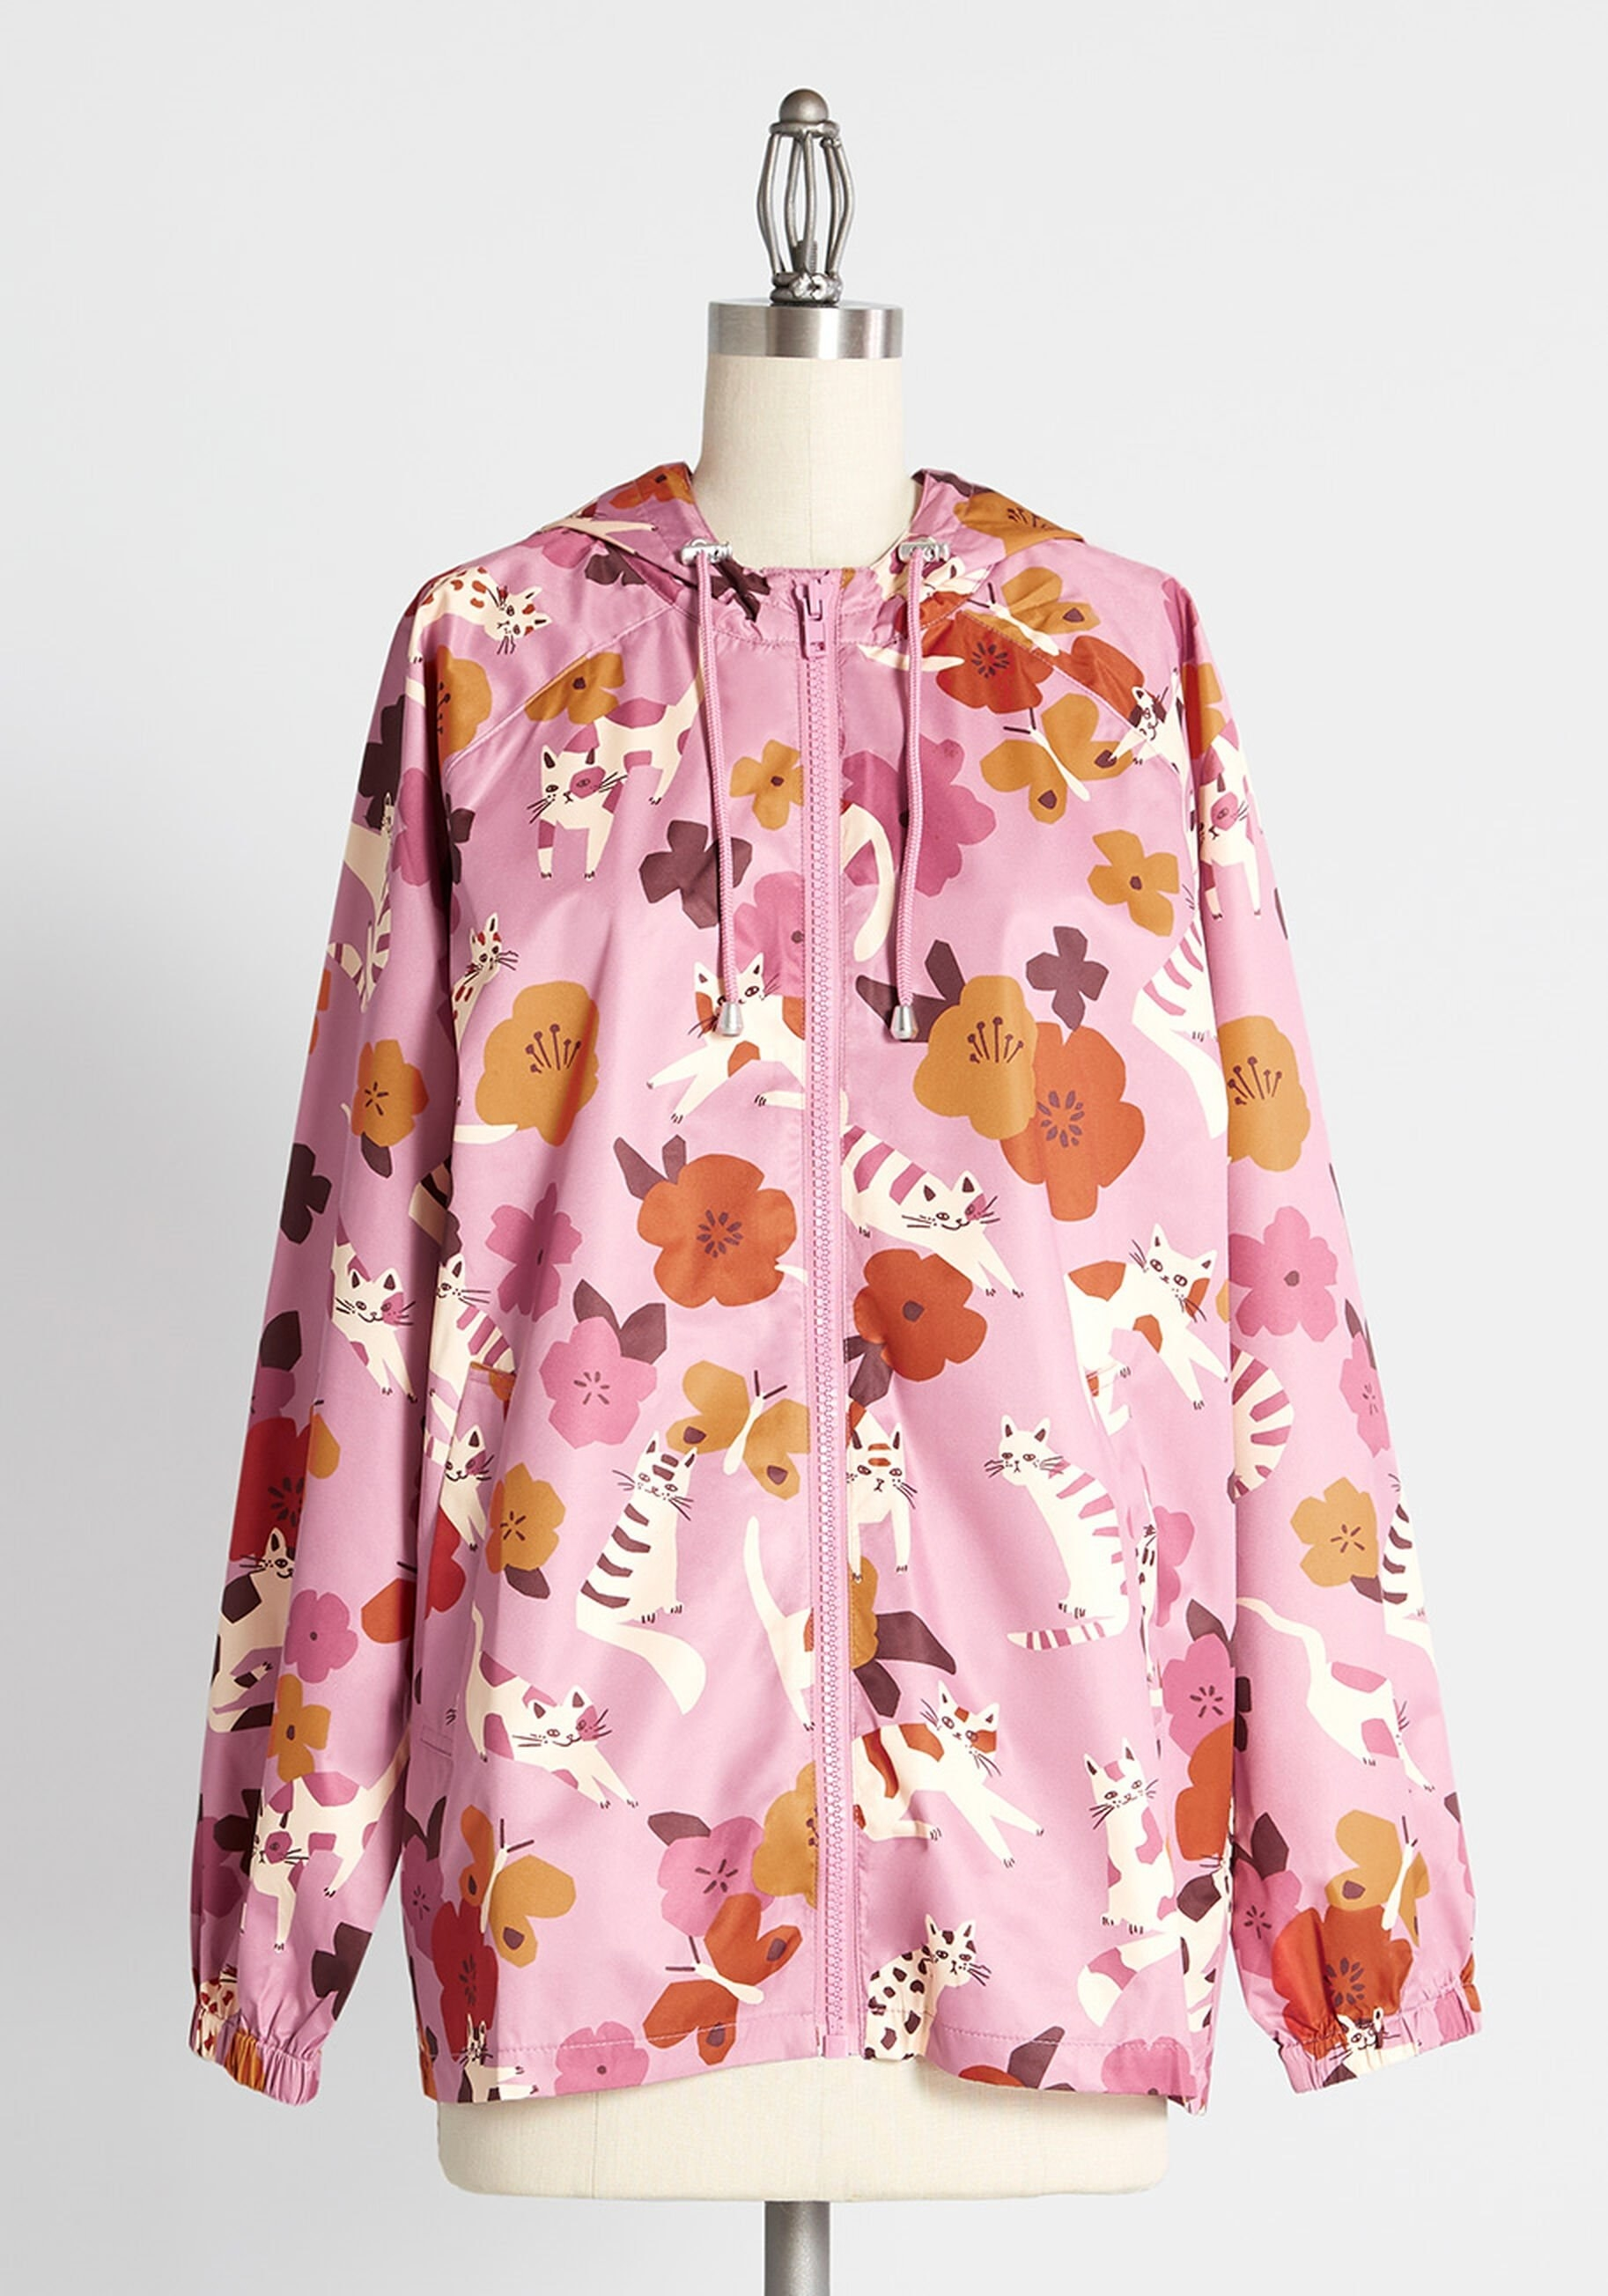 a pink raincoat covered in flowers and cats